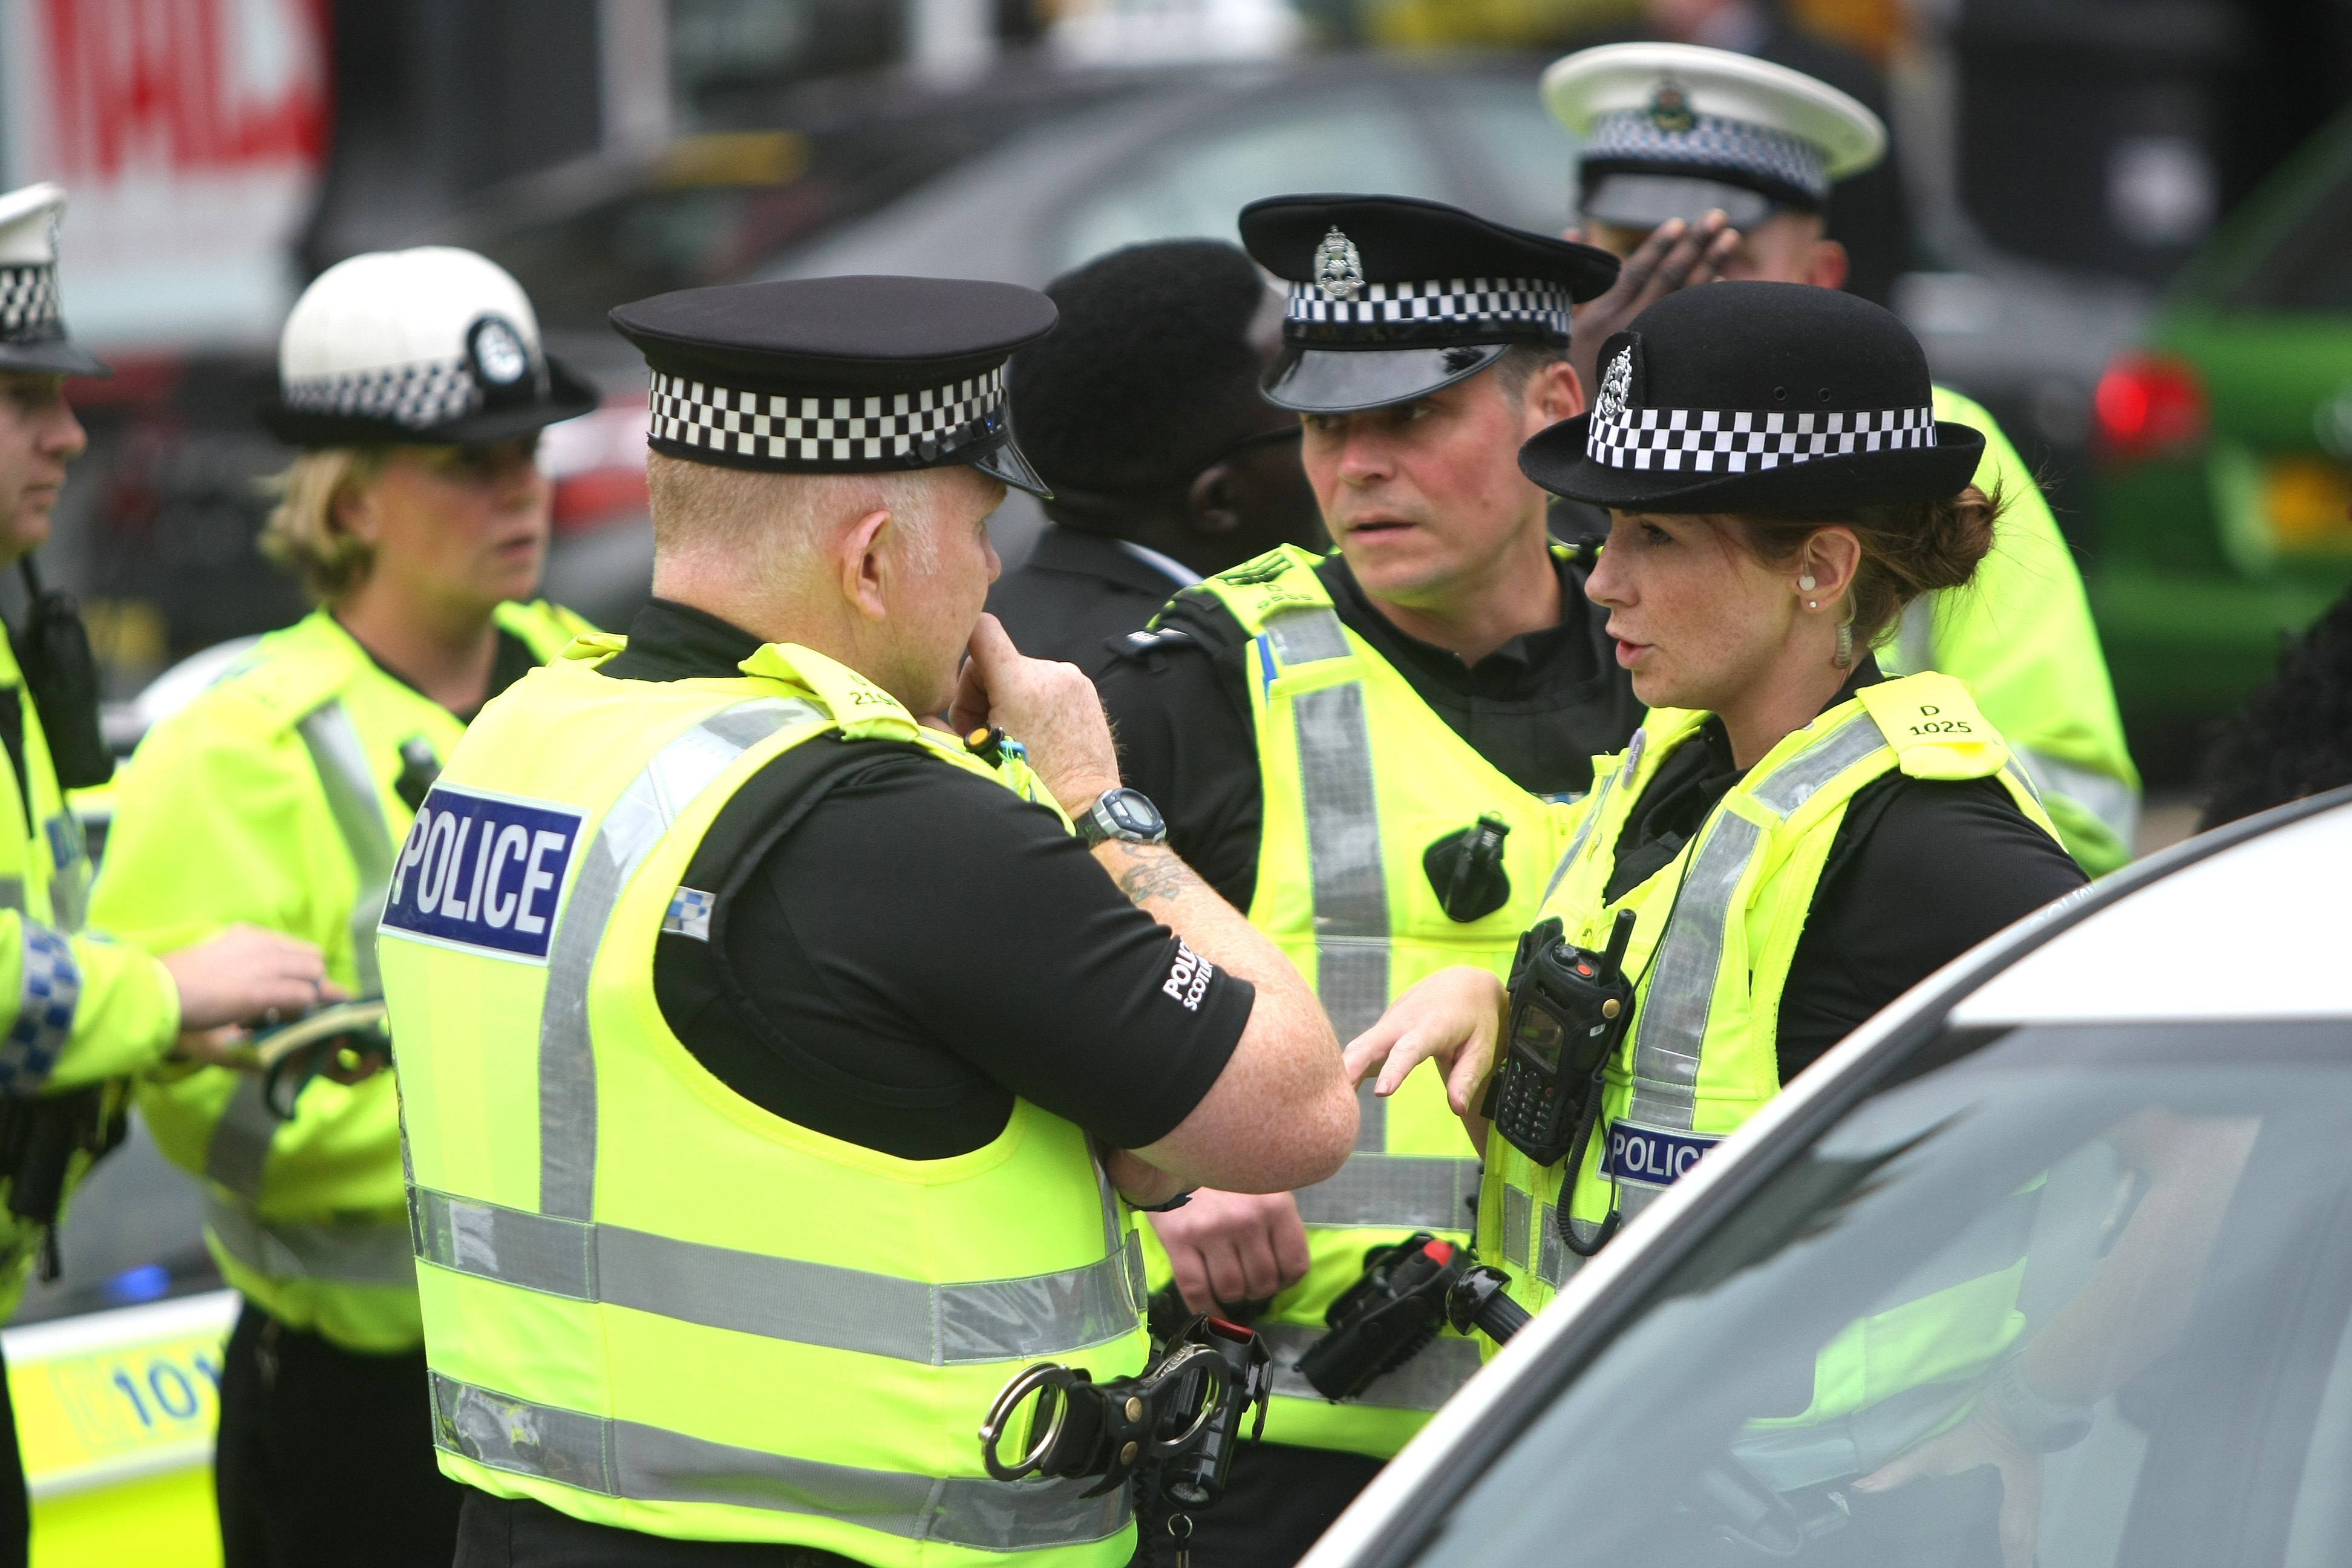 Police Scotland officers at the scene of the alleged incident on Thursday evening.